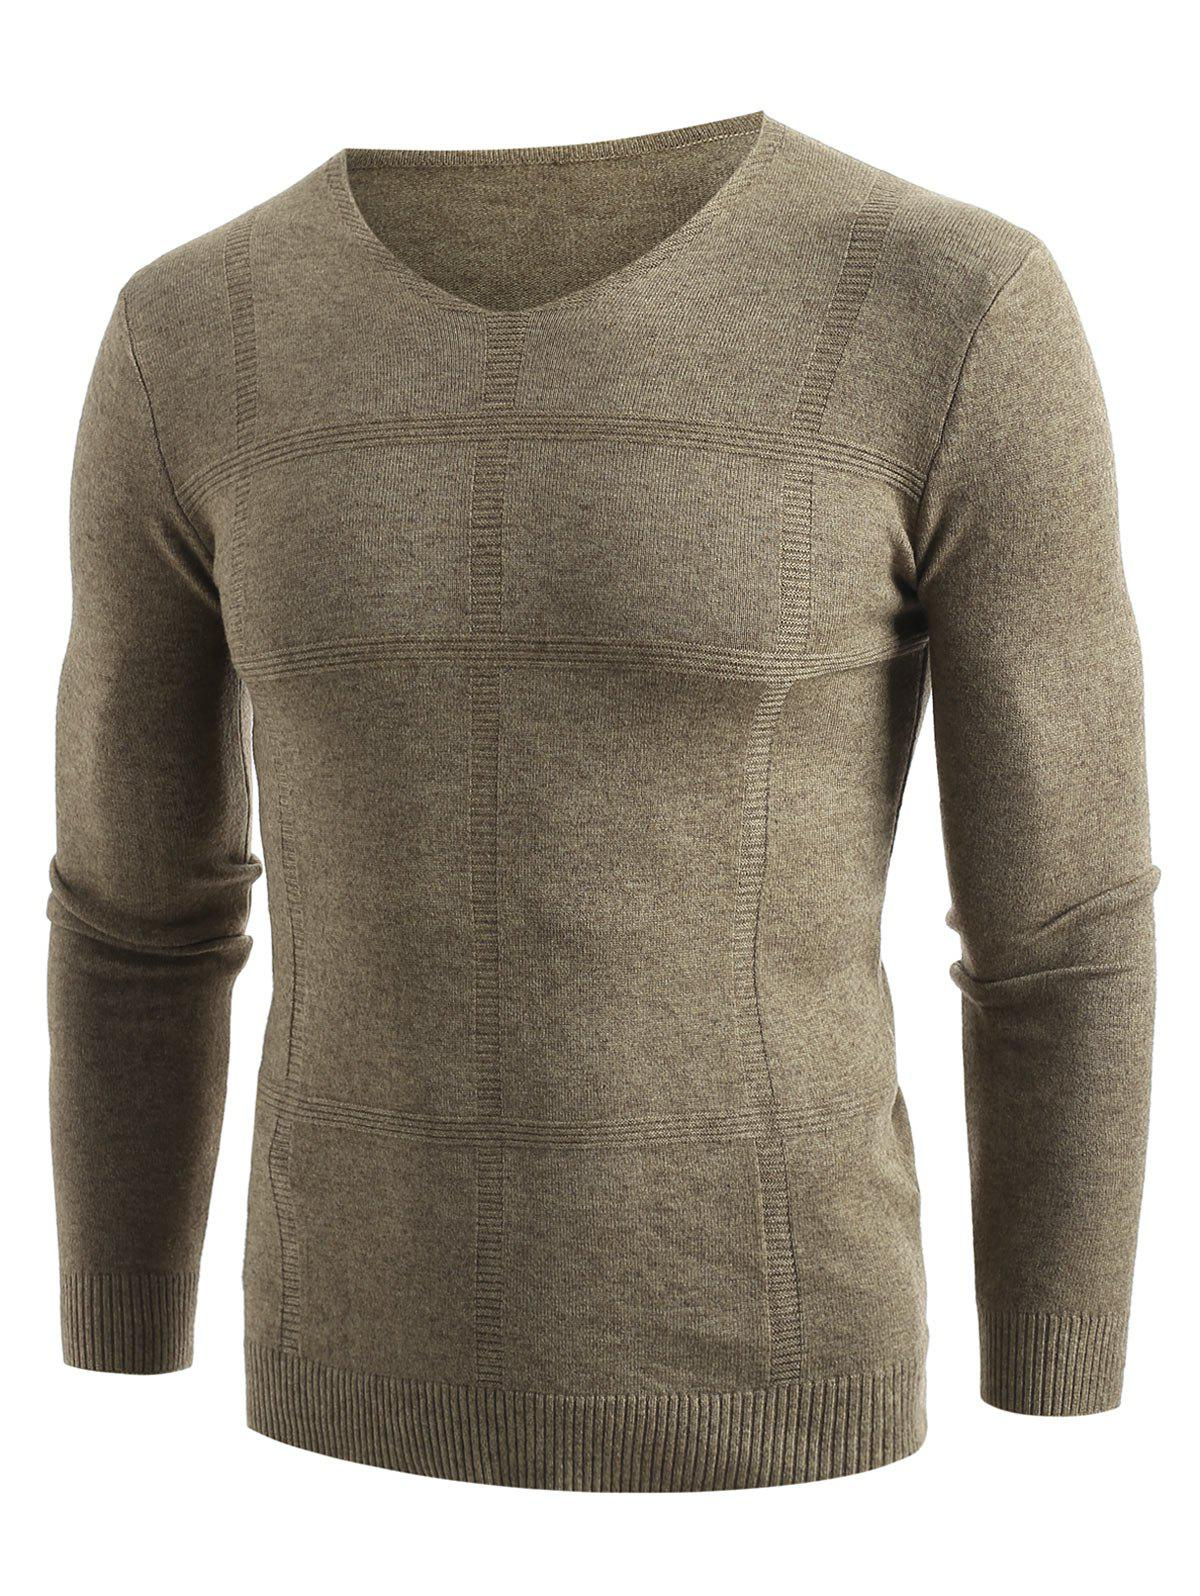 Solid V Neck Pullover Sweater - KHAKI XS